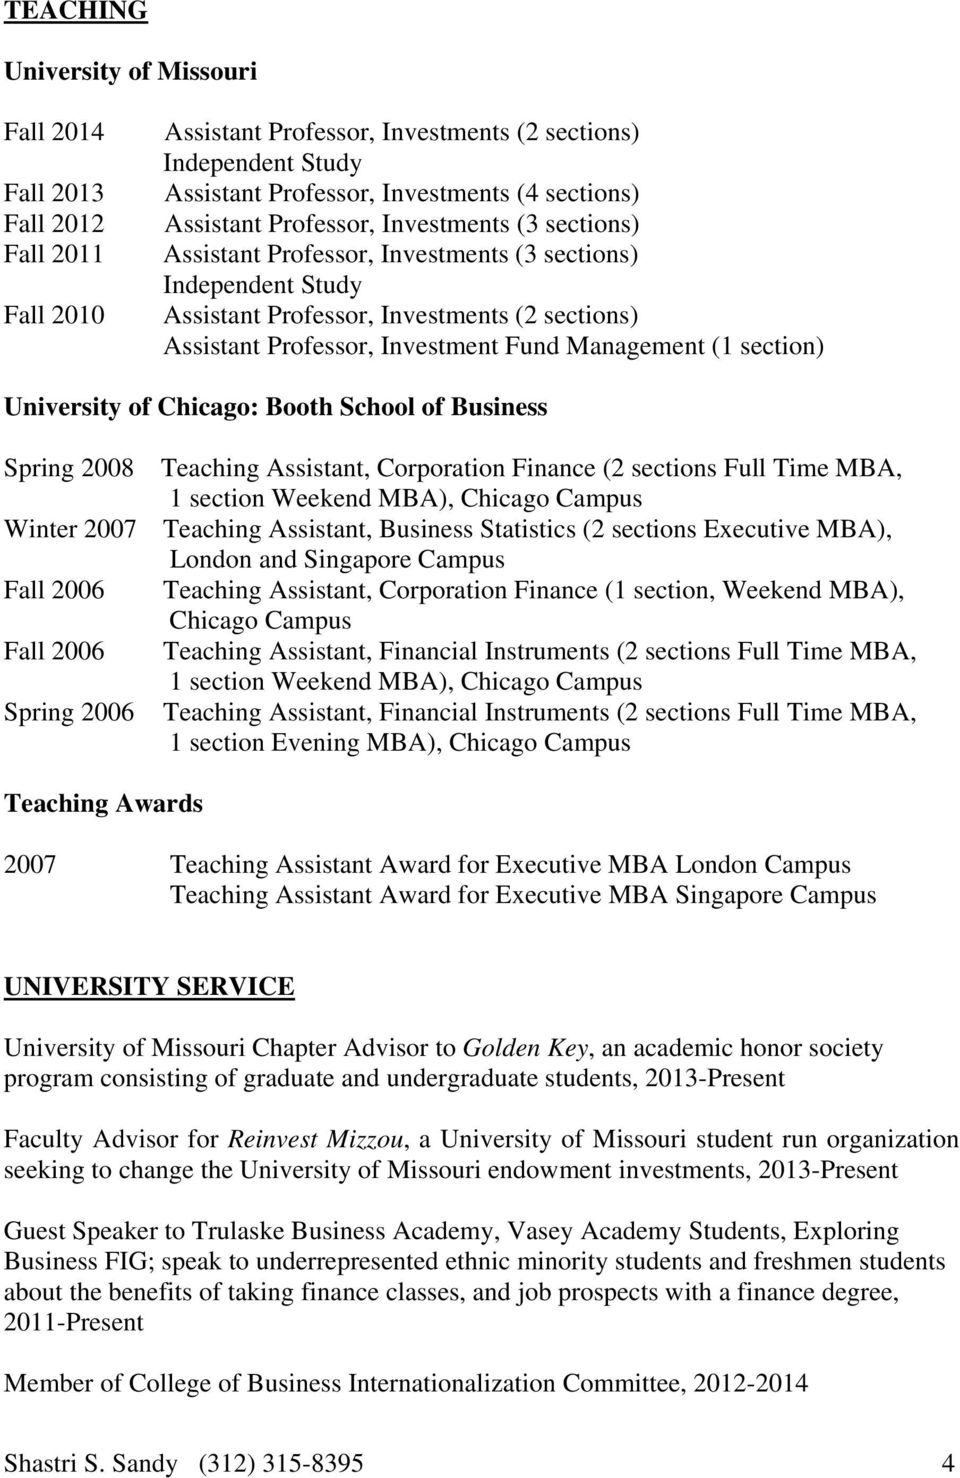 Management (1 section) University of Chicago: Booth School of Business Spring 2008 Teaching Assistant, Corporation Finance (2 sections Full Time MBA, 1 section Weekend MBA), Chicago Campus Winter